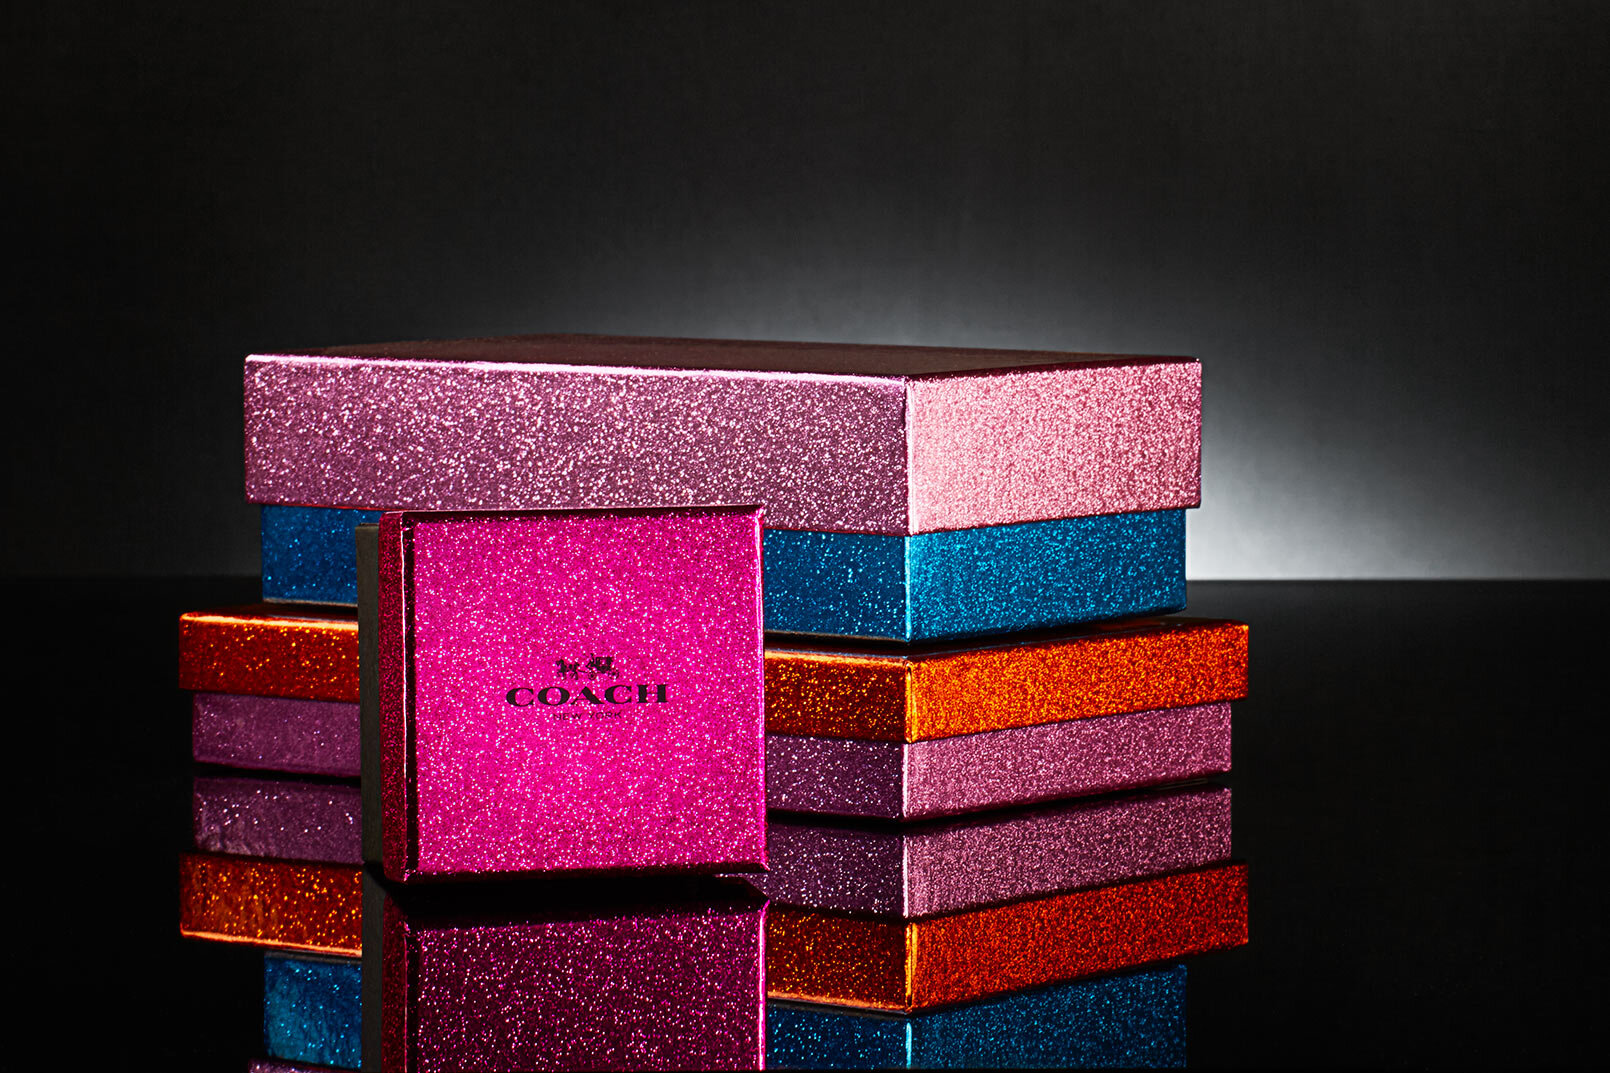 Coach-Glitter-Boxes-Holiday-Packaging-Design-Packaging-Structural-Company.jpg